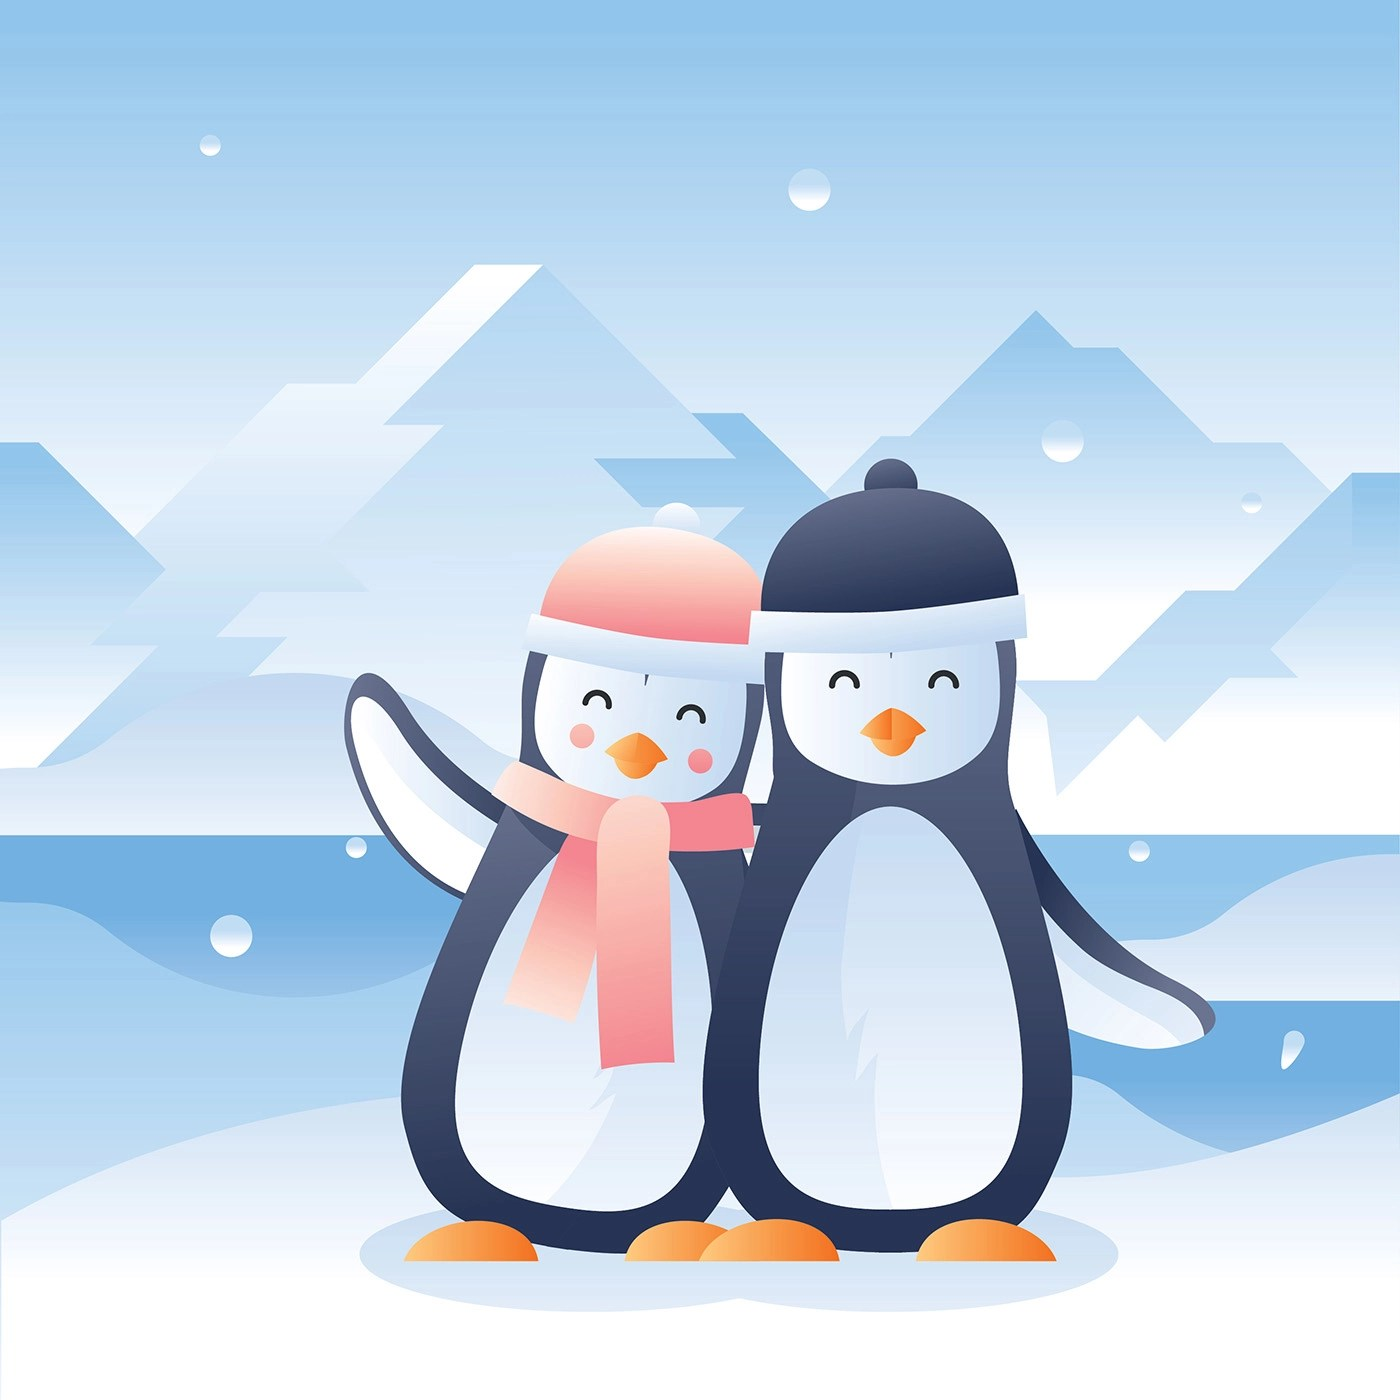 Sweet Cute Couple Wallpaper Penguins In Love Vector Download Free Vector Art Stock